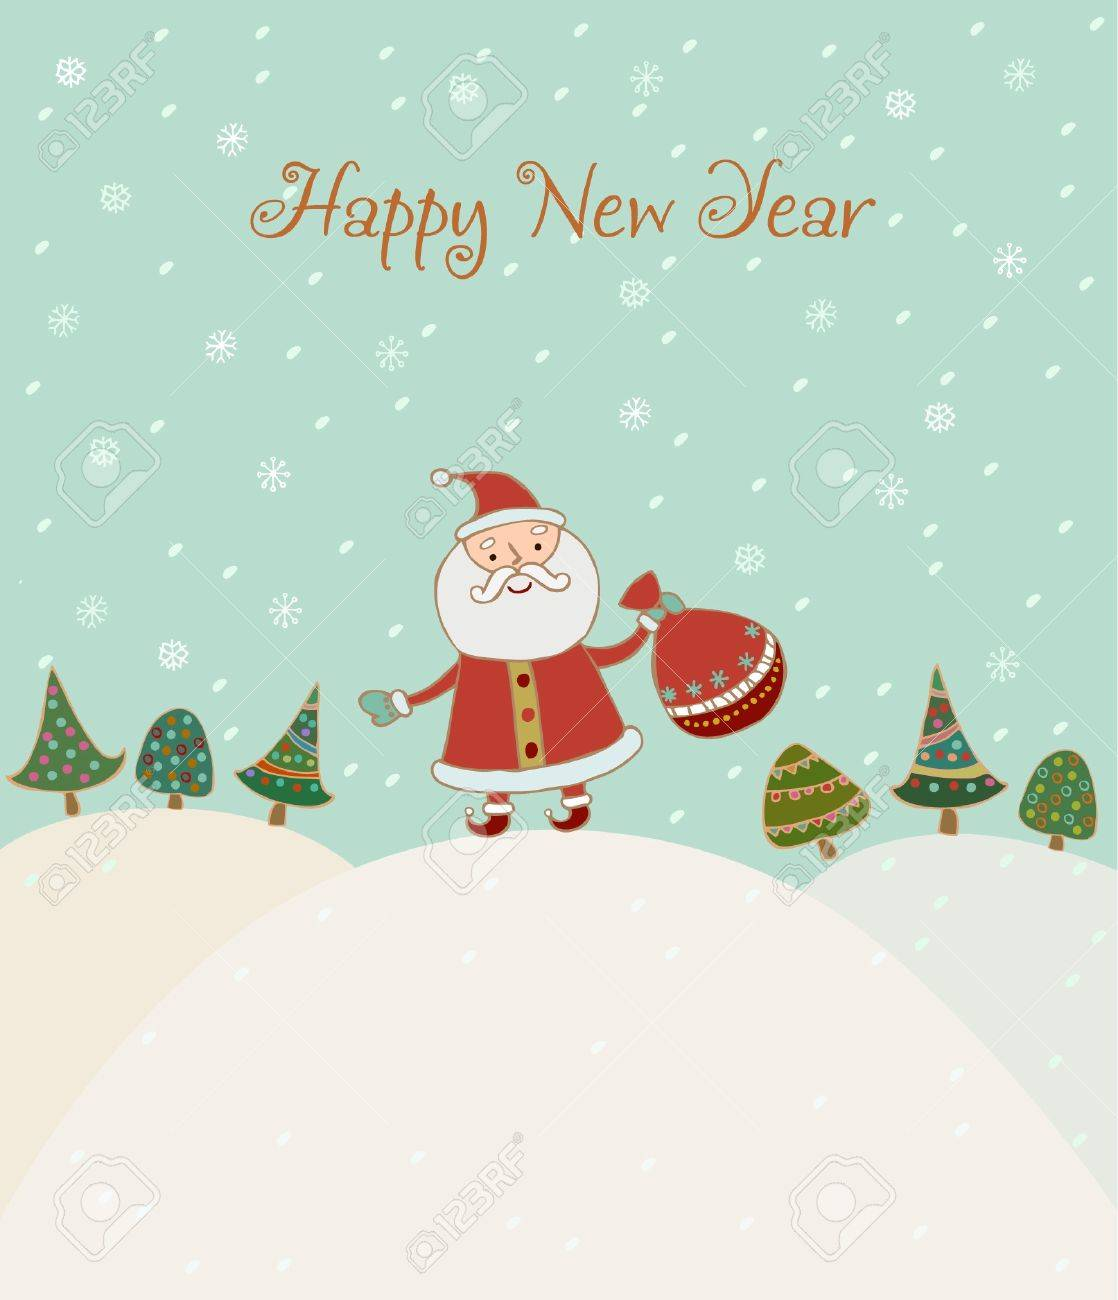 Illustrated Hand Drawn New Year Greeting Card With Sample Text – New Year Greeting Card Template